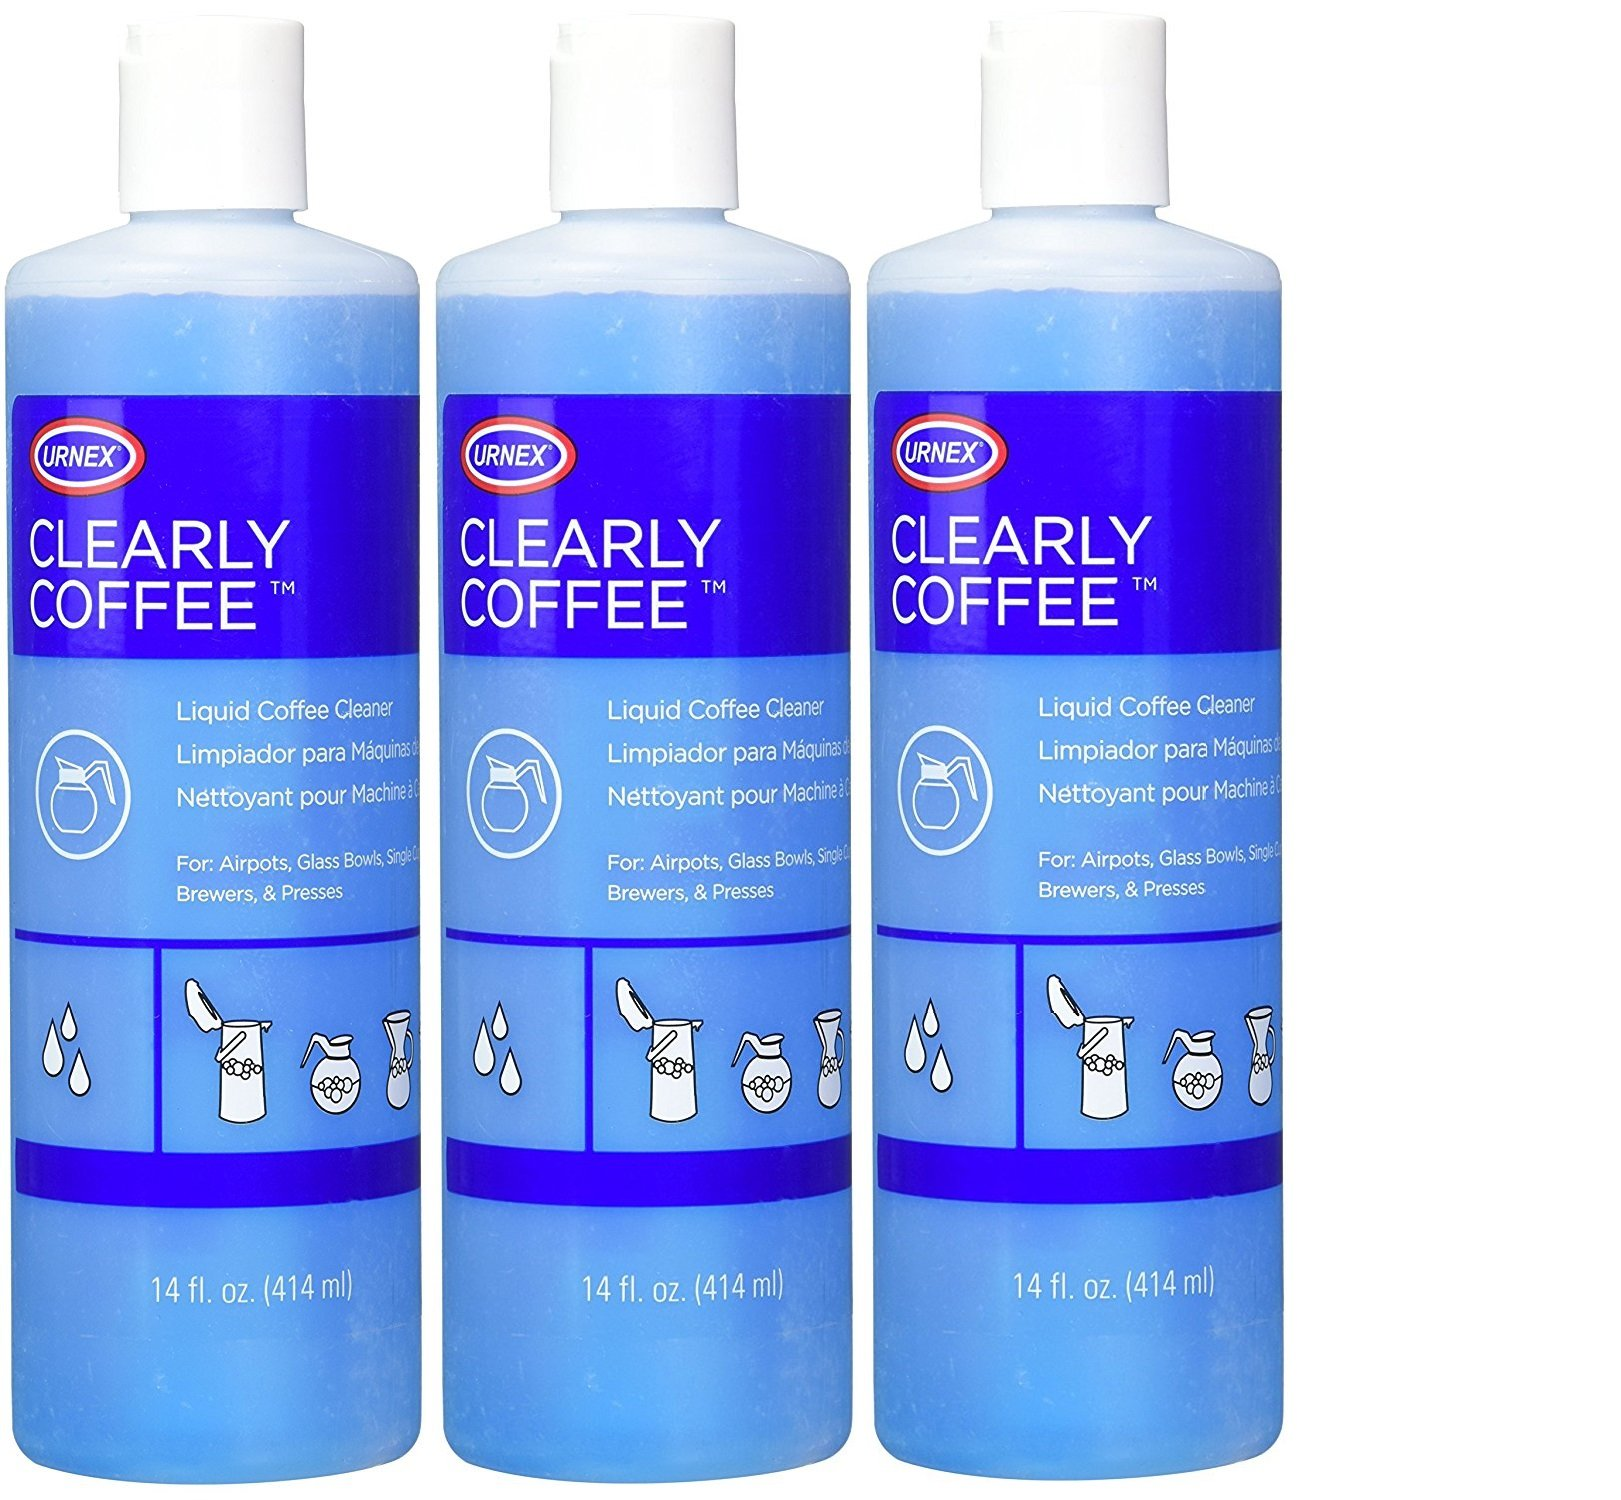 Urnex Clearly Coffee Liquid Coffee Pot Cleaner 14 0z -3PACK